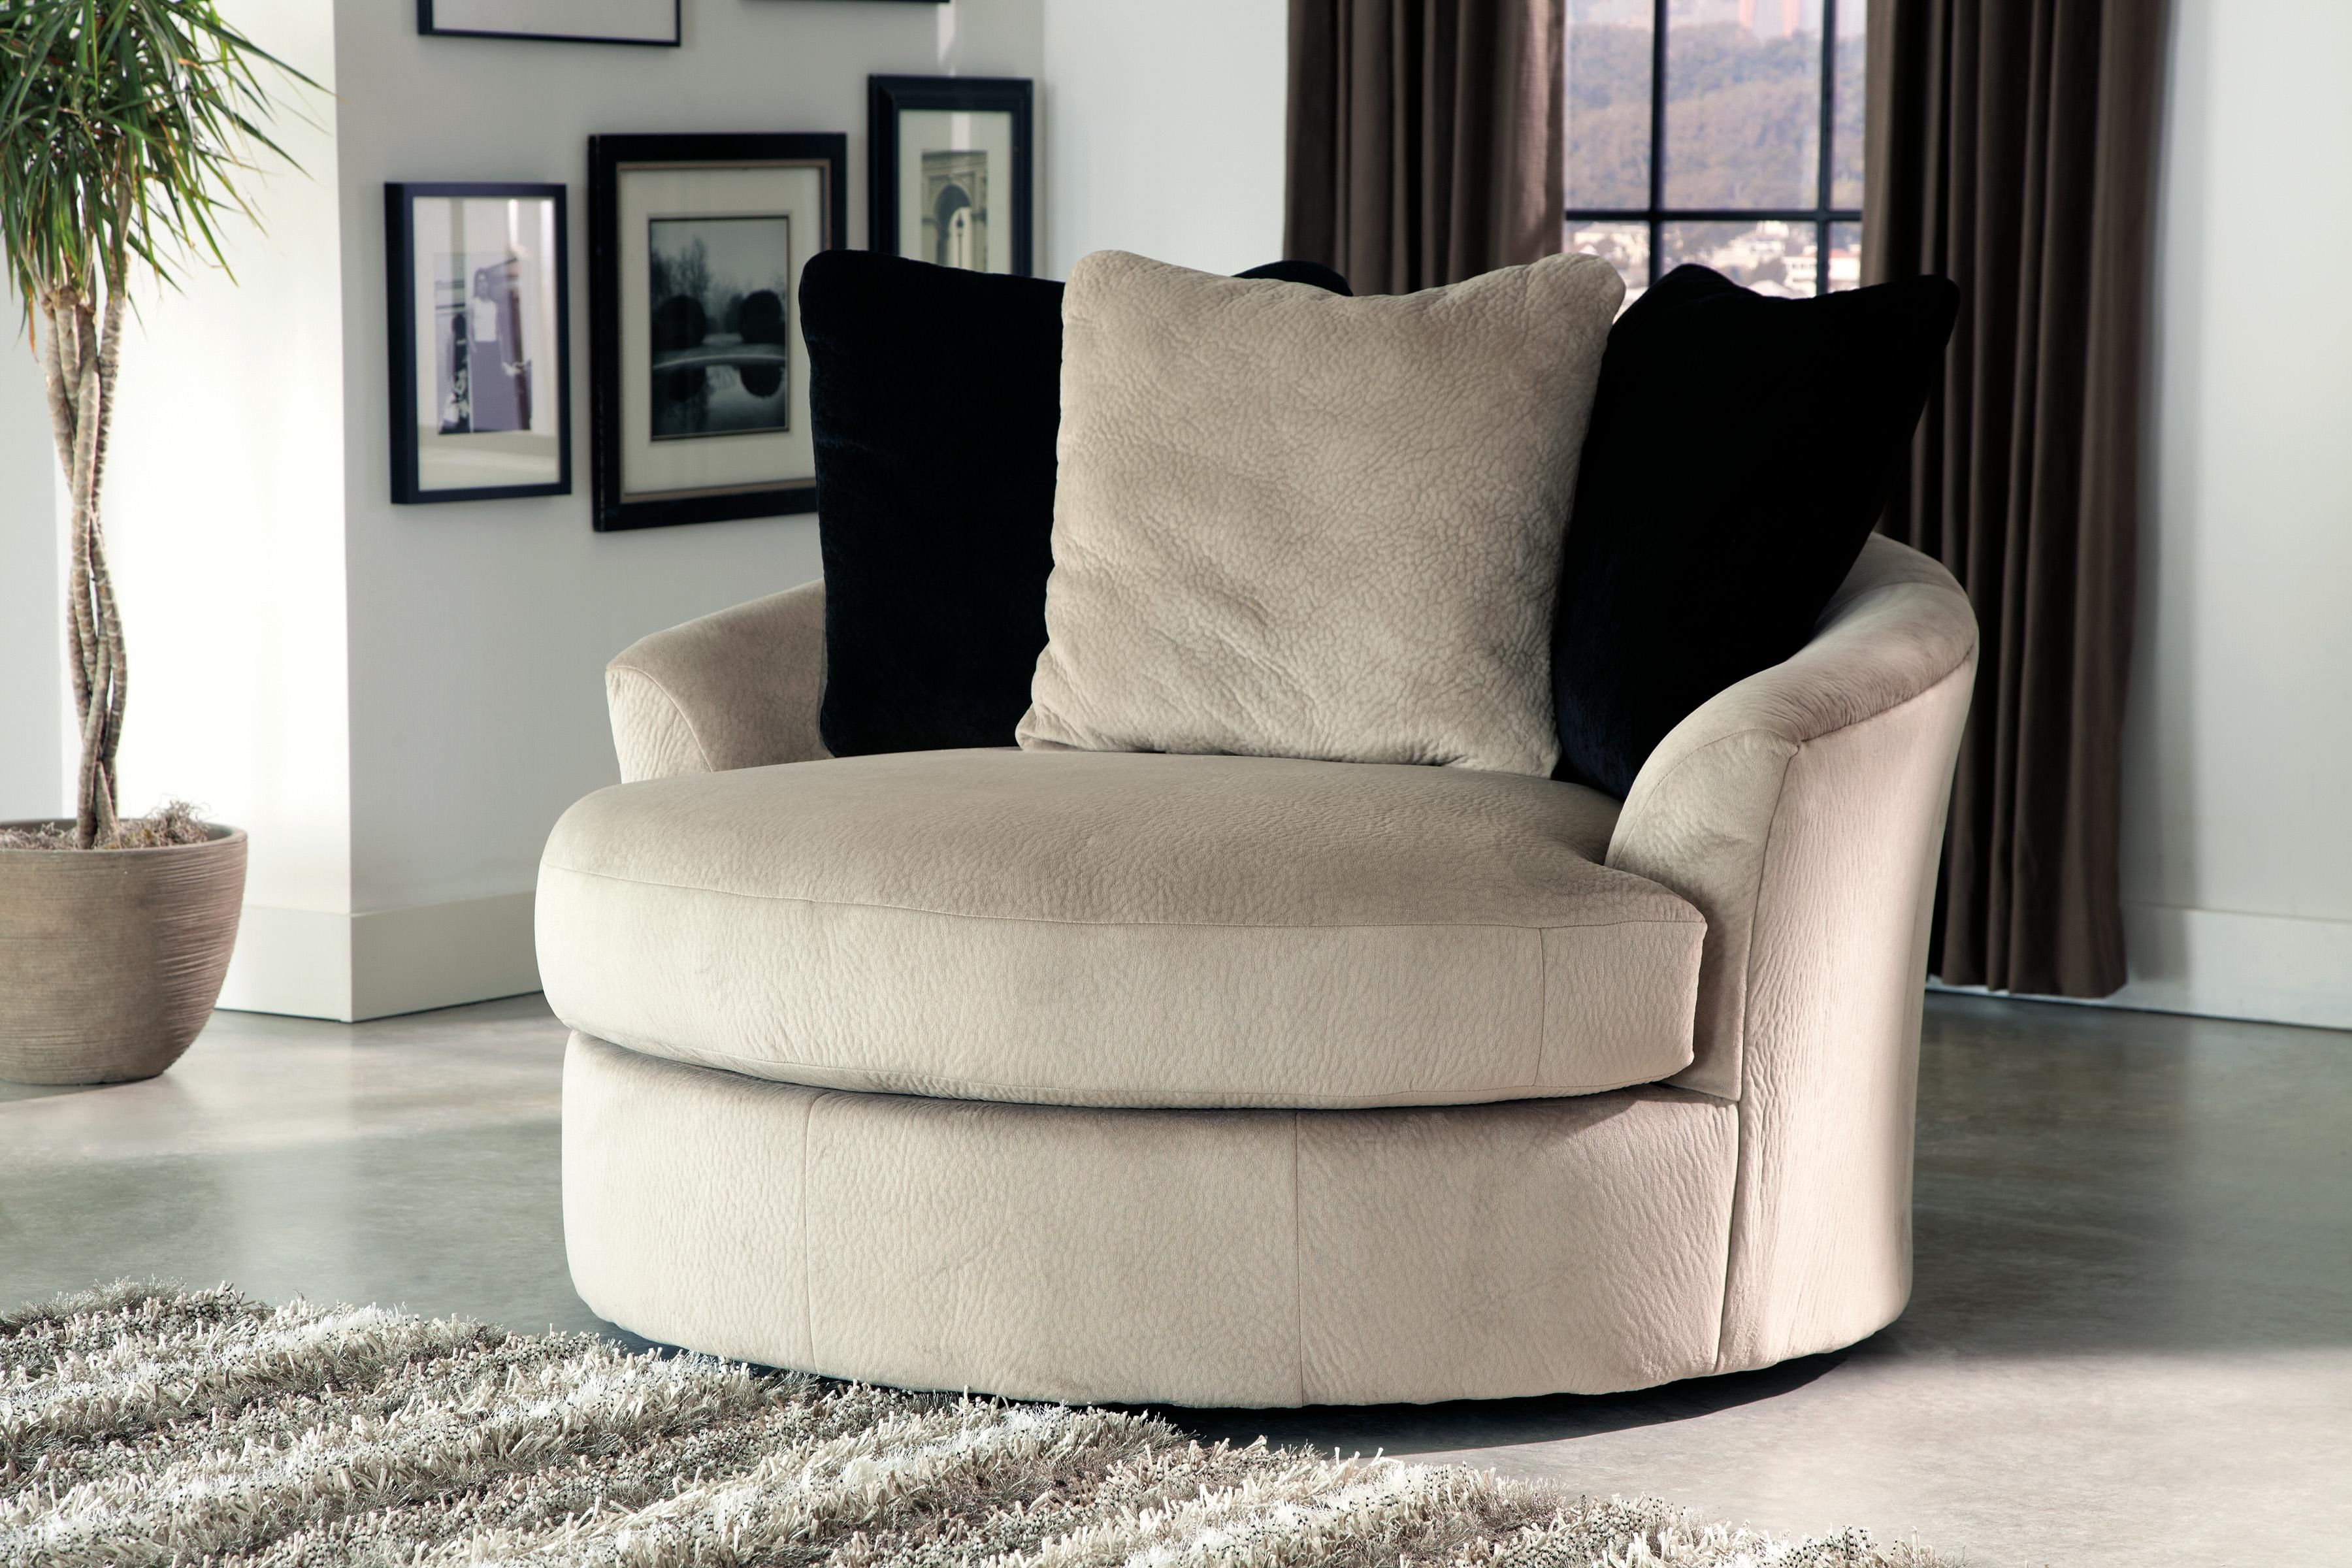 Heflin Oversized Swivel Accent Chair By Signature Design By Ashley Furniture At Samsfurniture